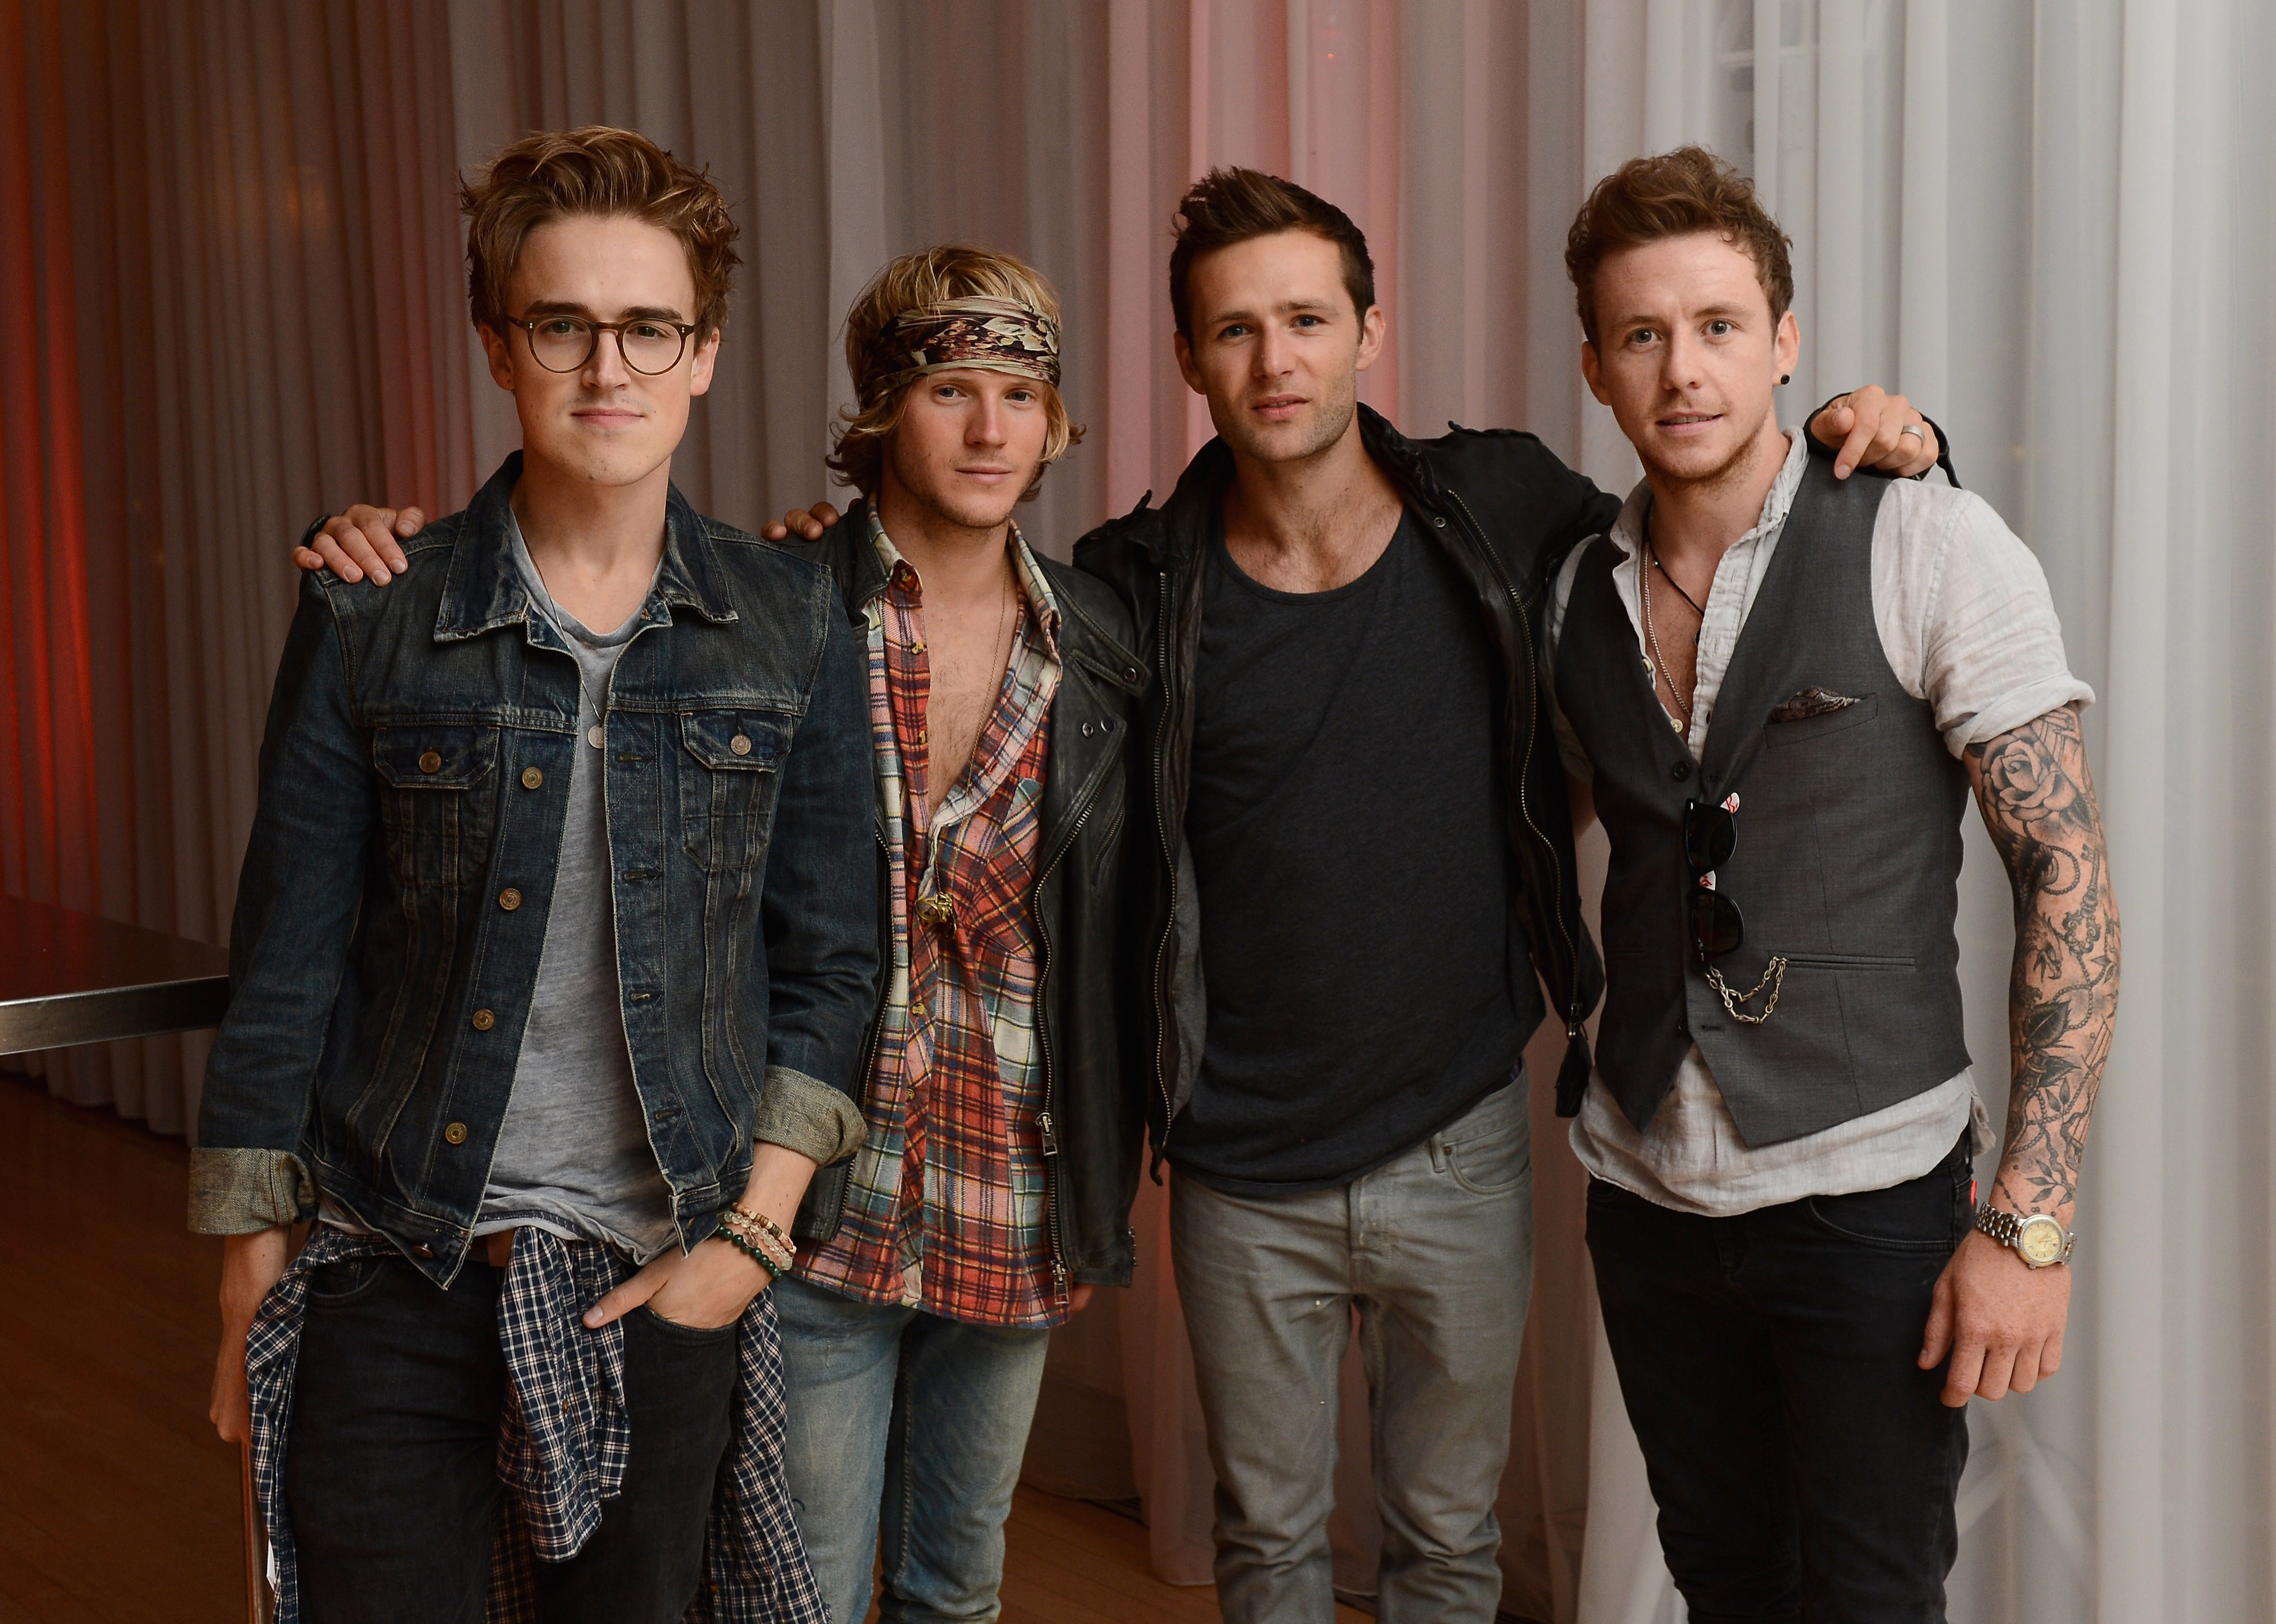 After four sell out 10th anniversary gigs at London's Royal Albert Hall: Why McFly are not a boyband